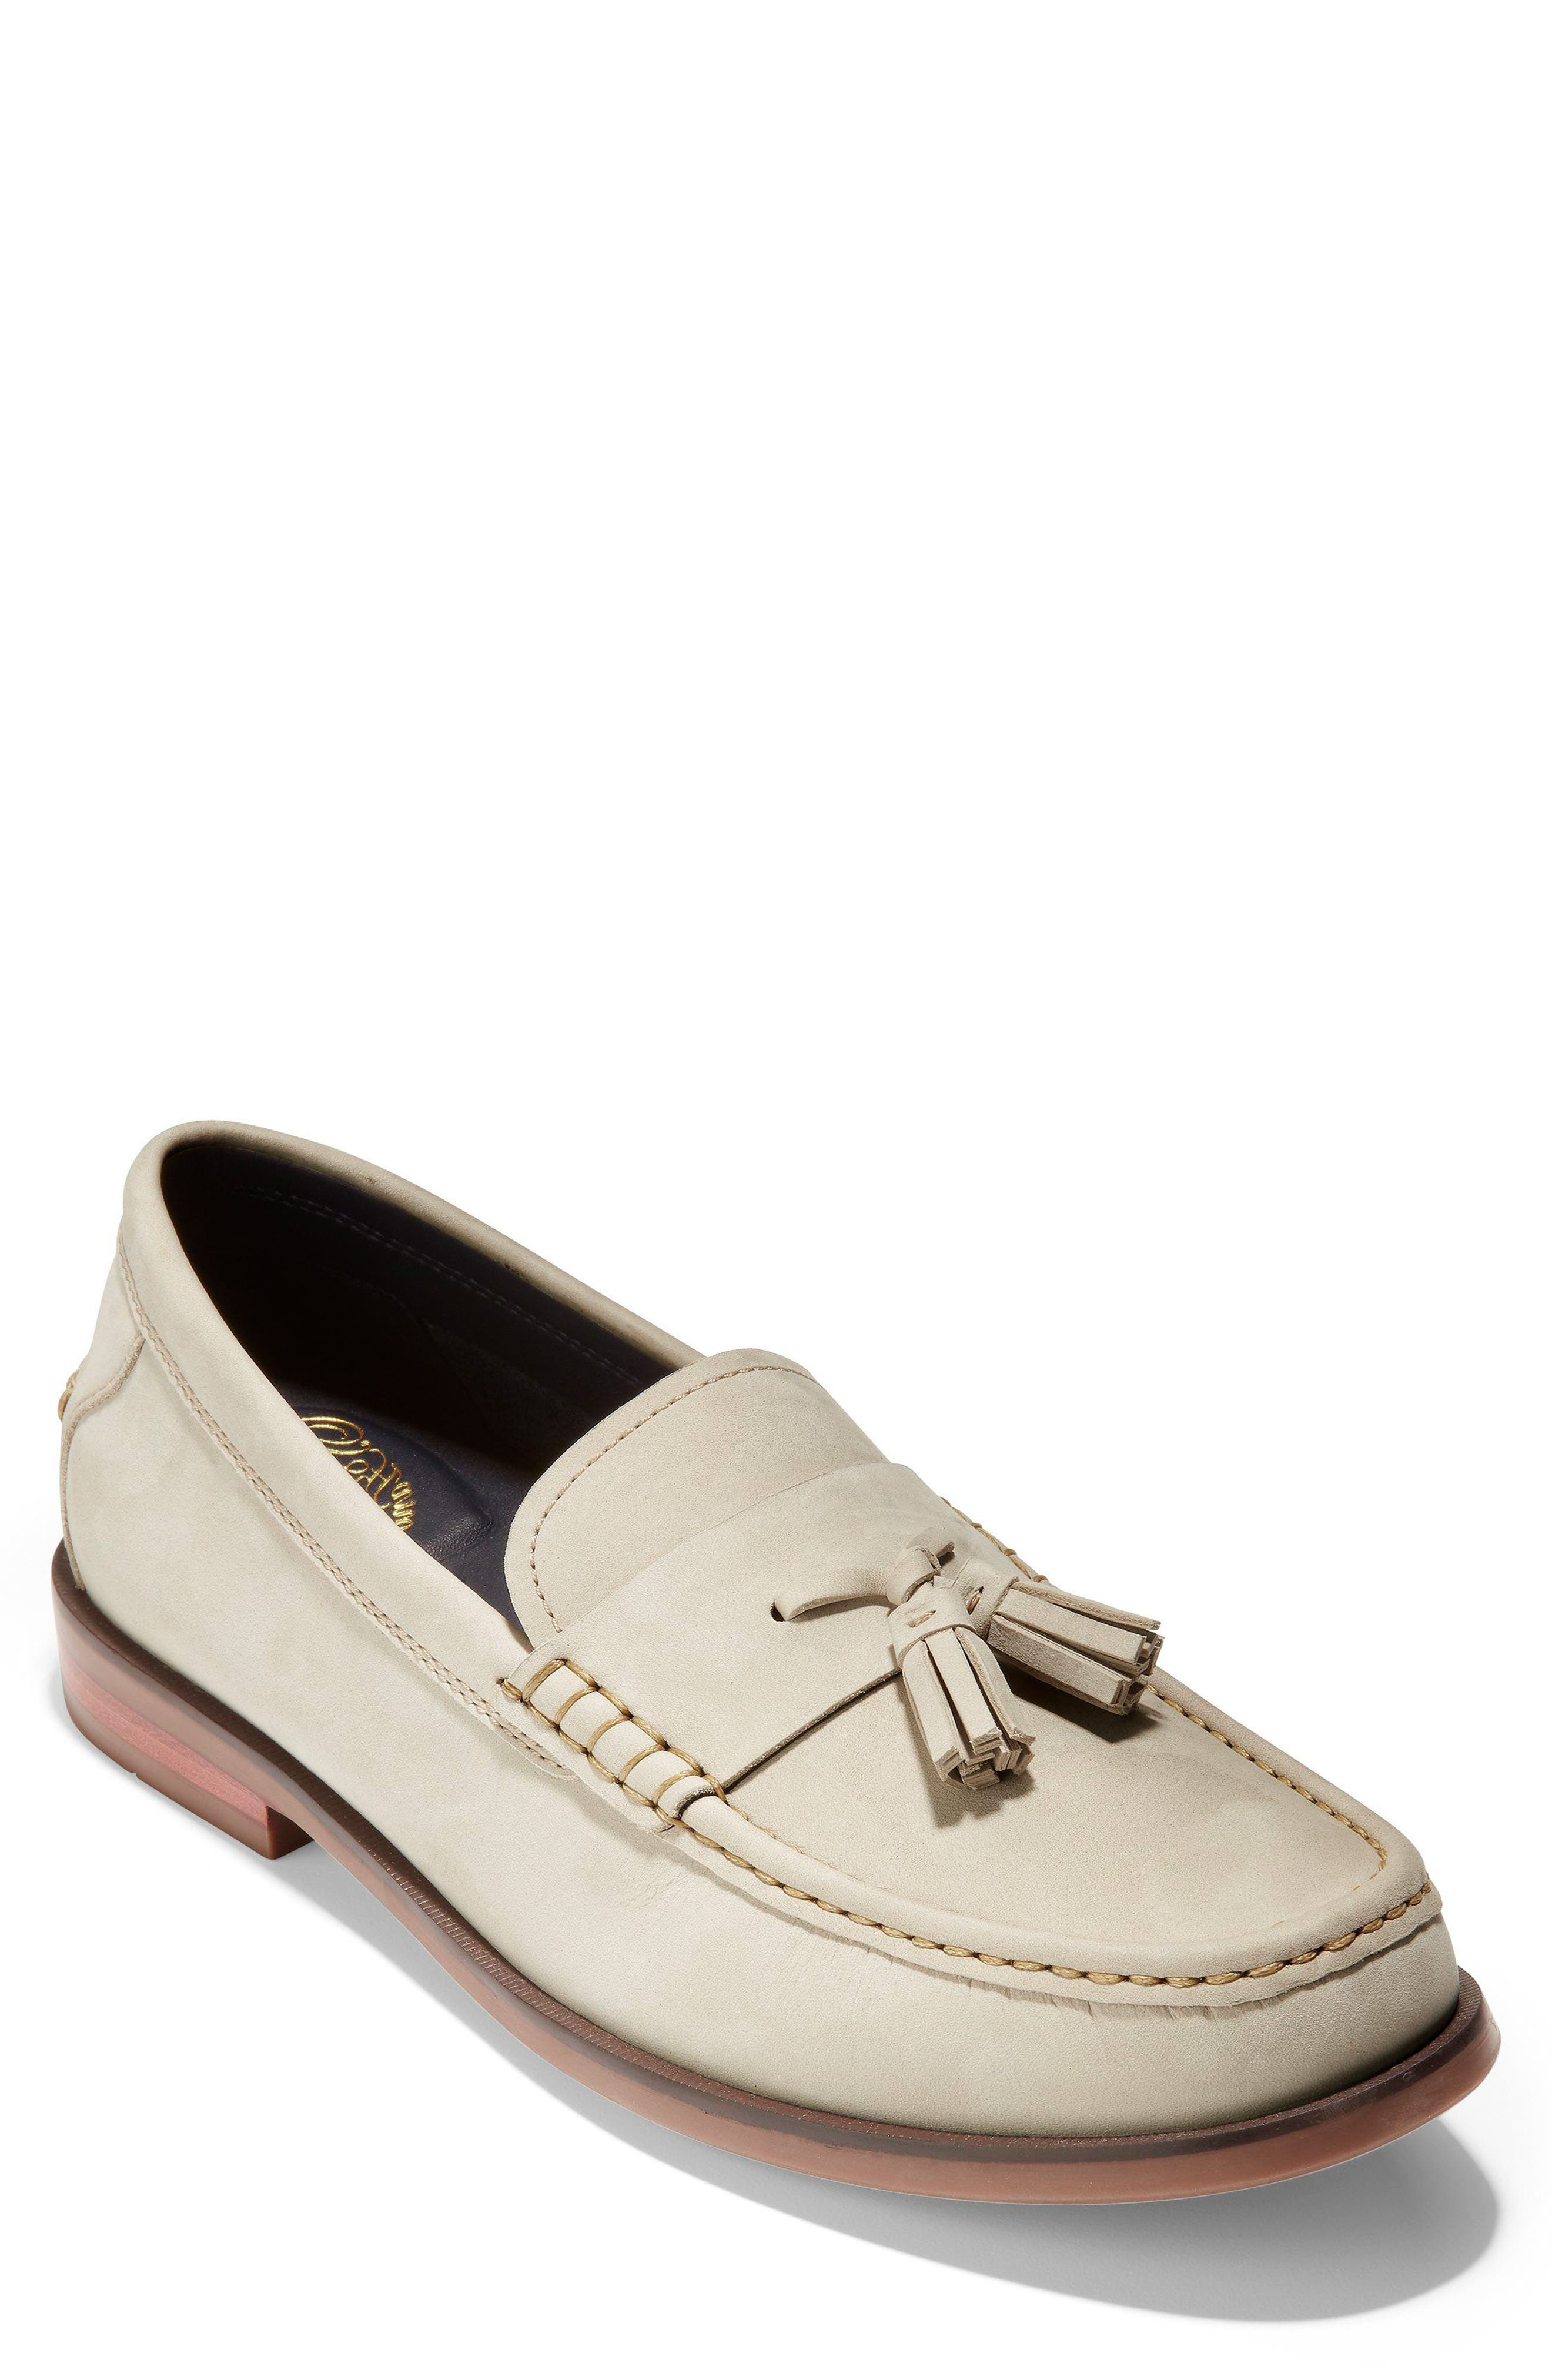 Pinch Friday Tassel Loafer,                         Main,                         color, Pumice Stone Nubuck